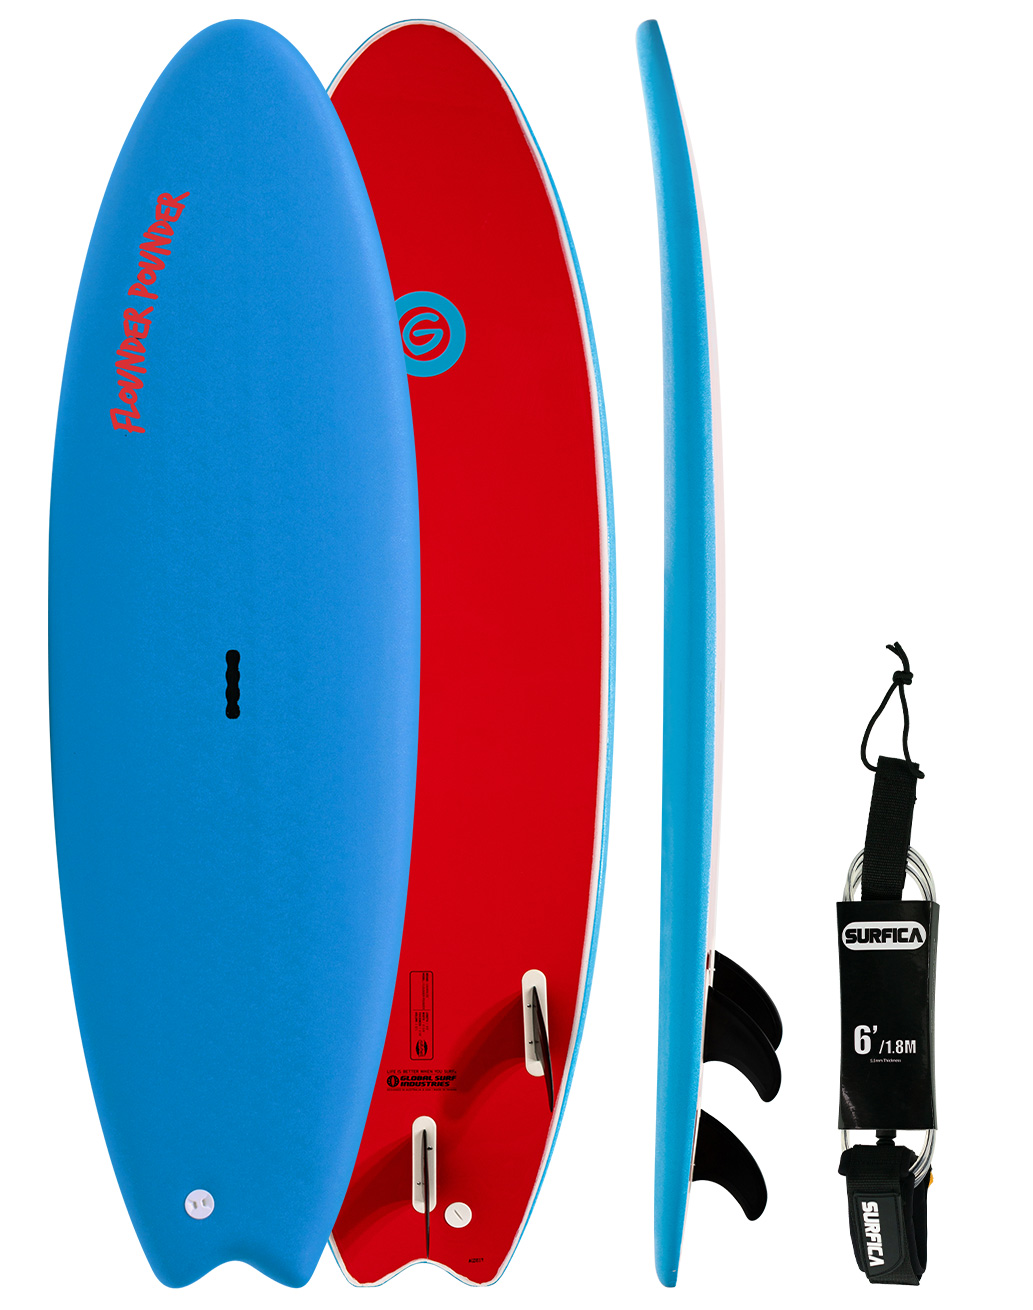 Gnaraloo Flounder Pounder & Surfica Leash Bundle